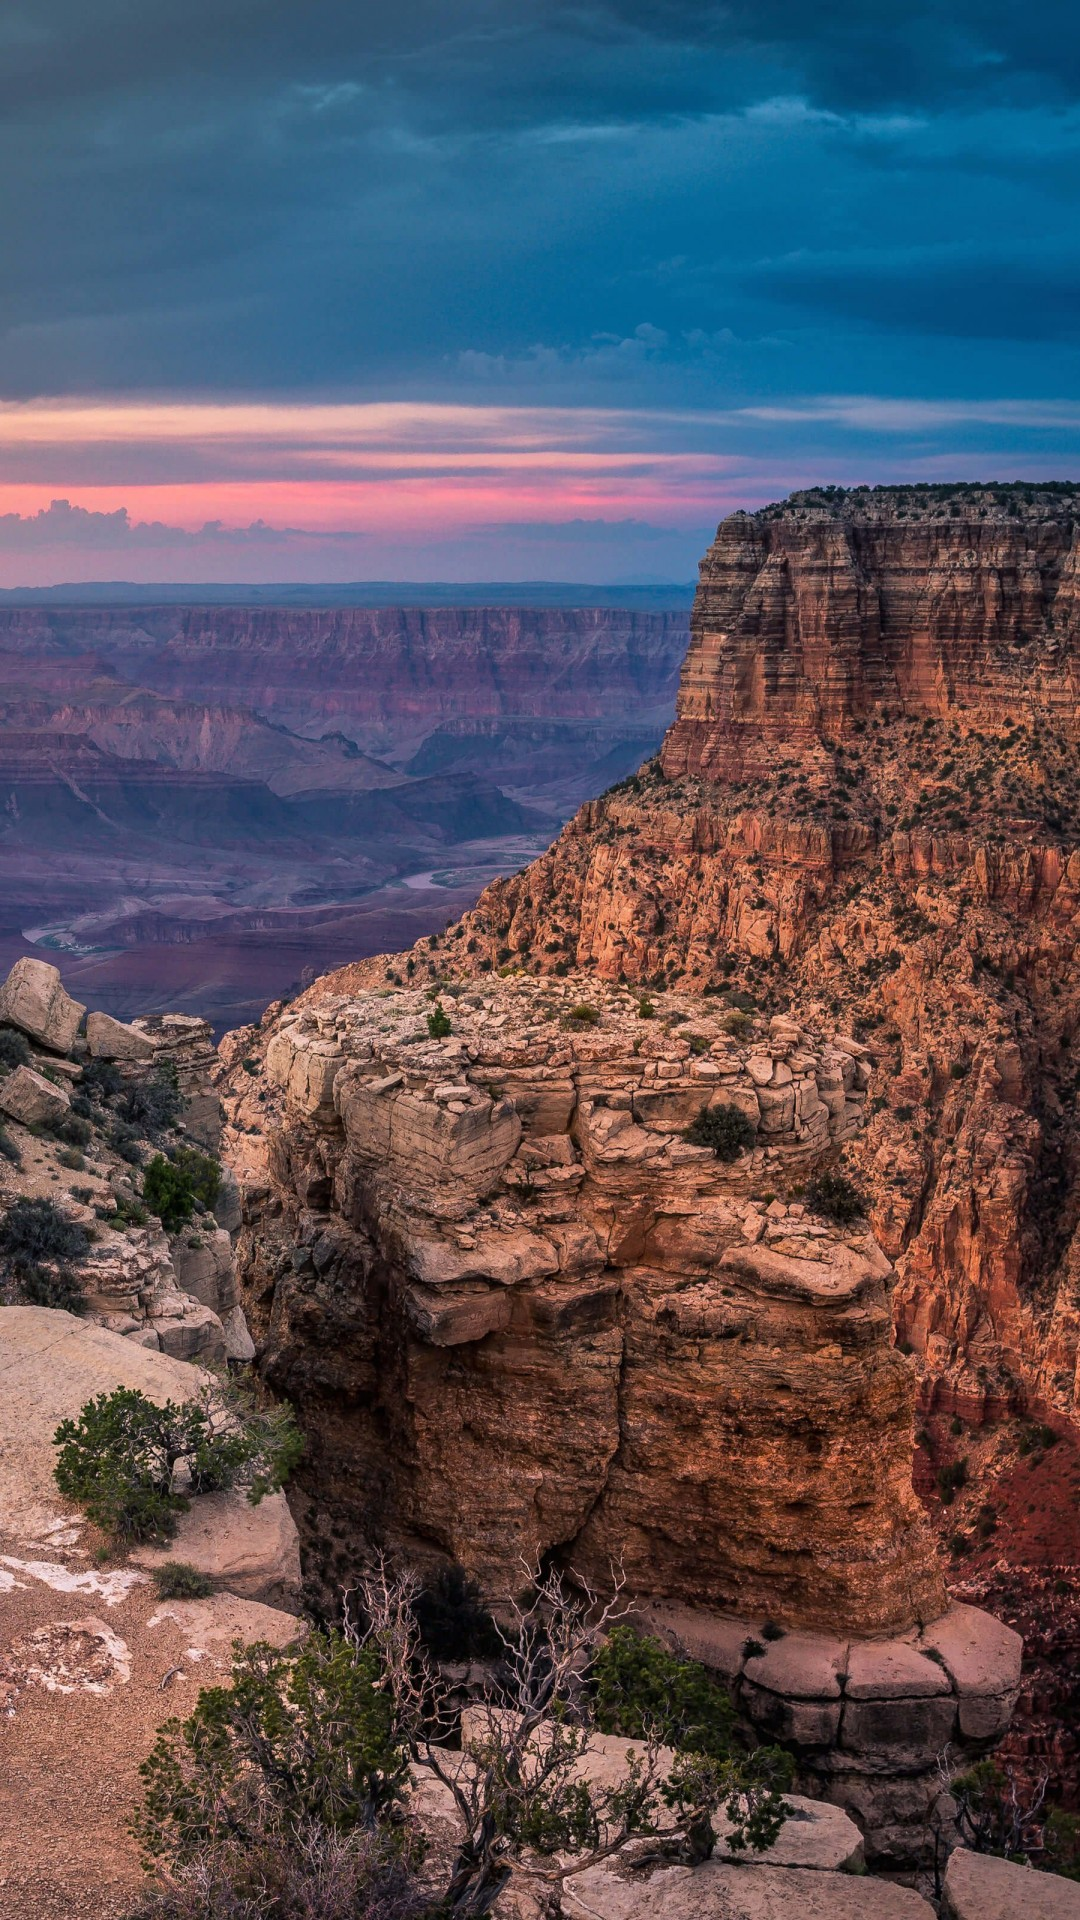 Sunset At The Grand Canyon Wallpaper for SONY Xperia Z2